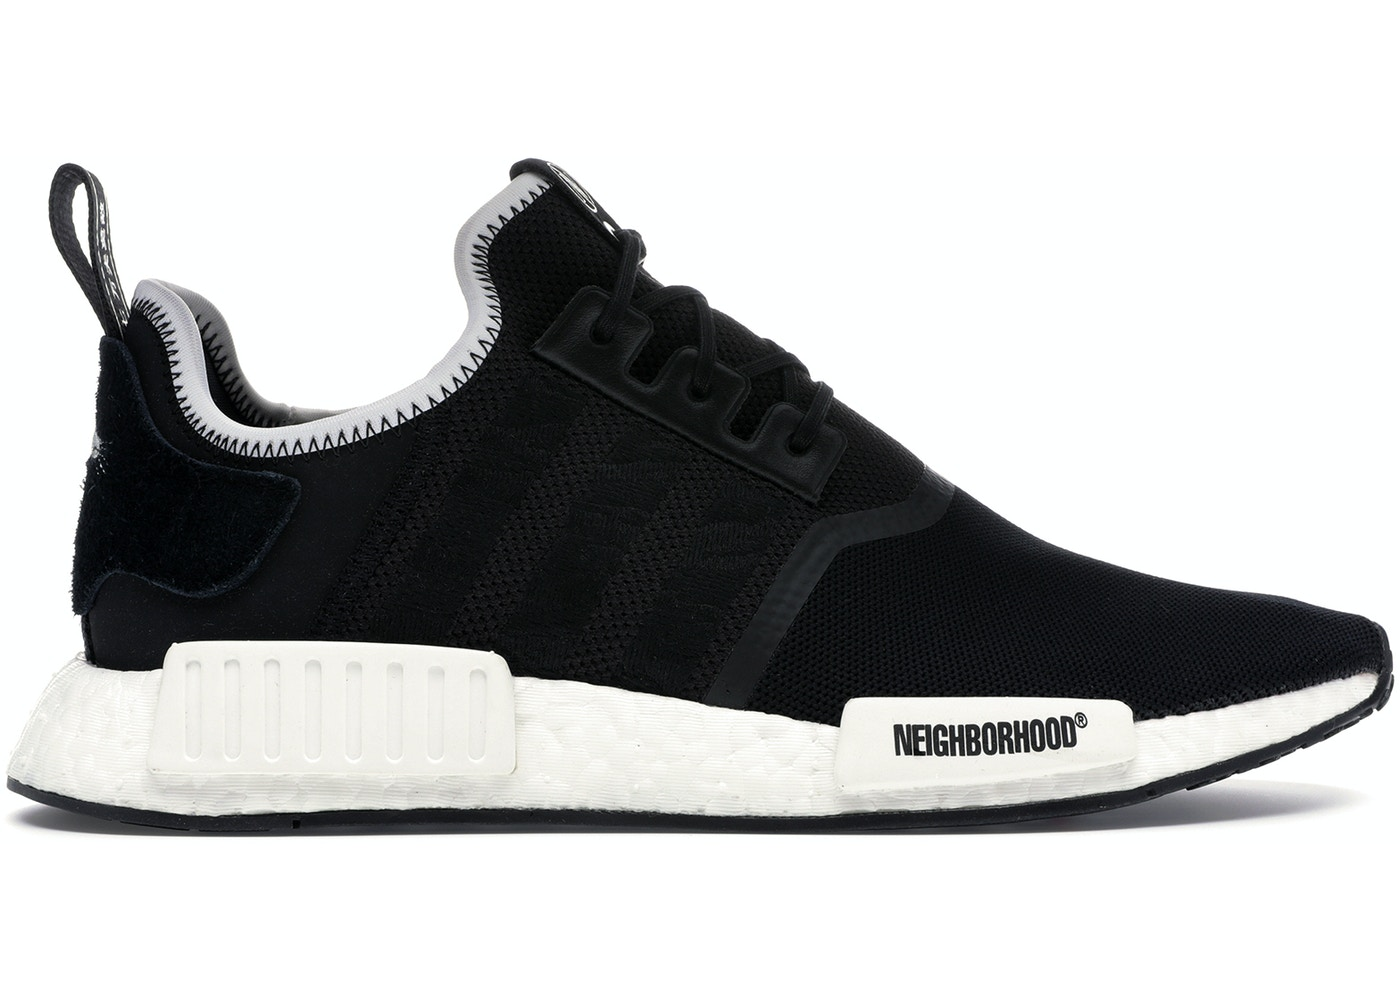 new concept 4e3f2 74080 adidas NMD R1 Neighborhood x Invincible